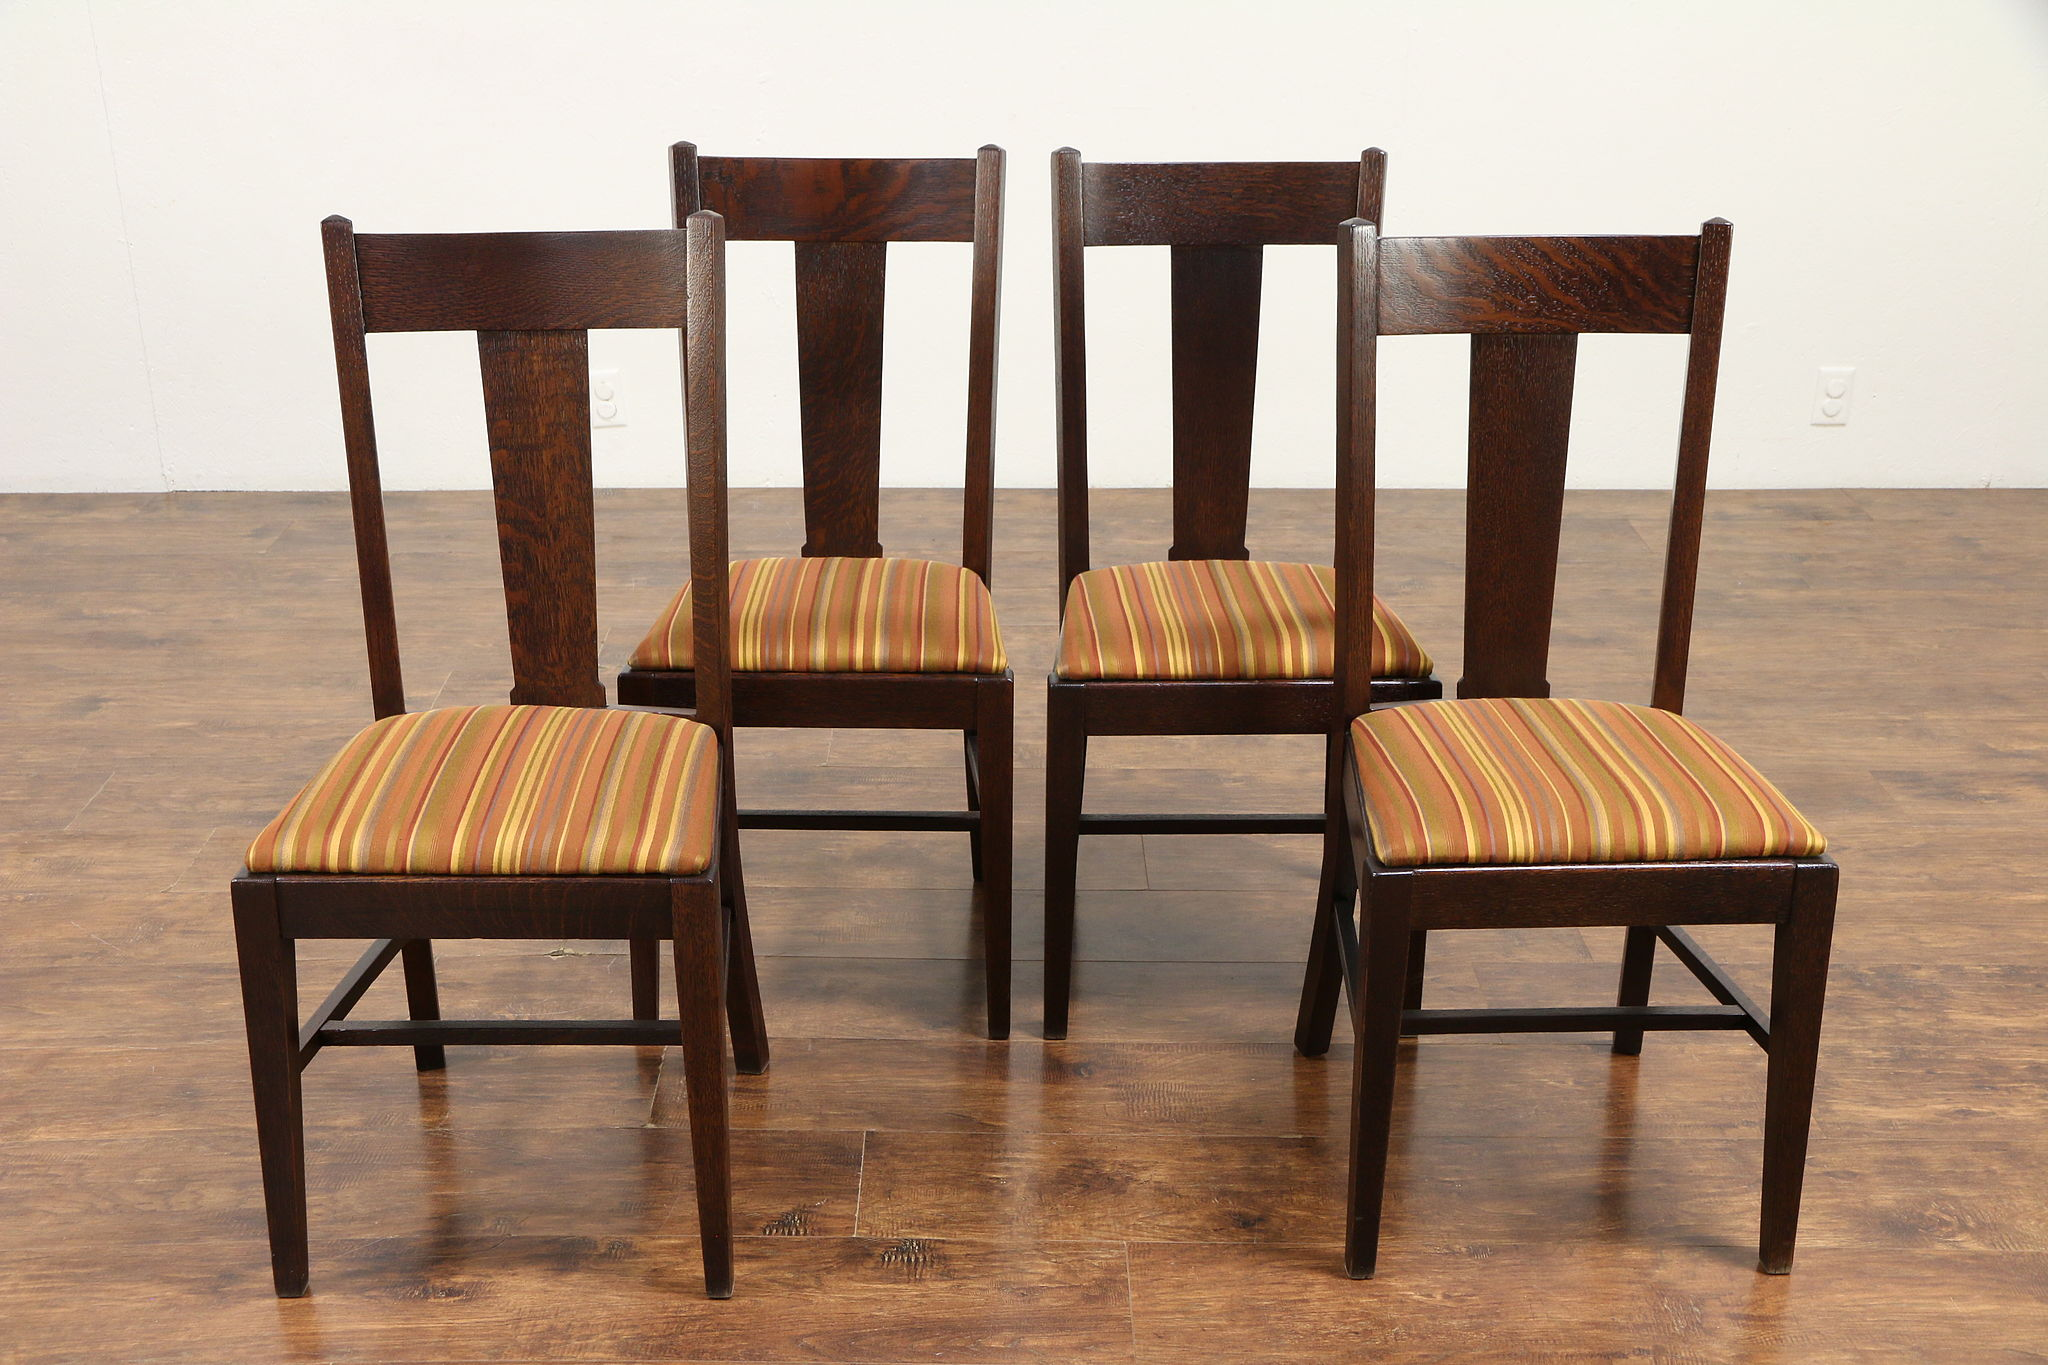 Pleasant Set 4 Arts Crafts Mission Oak Antique Craftsman Dining Chairs Striped 30569 Short Links Chair Design For Home Short Linksinfo